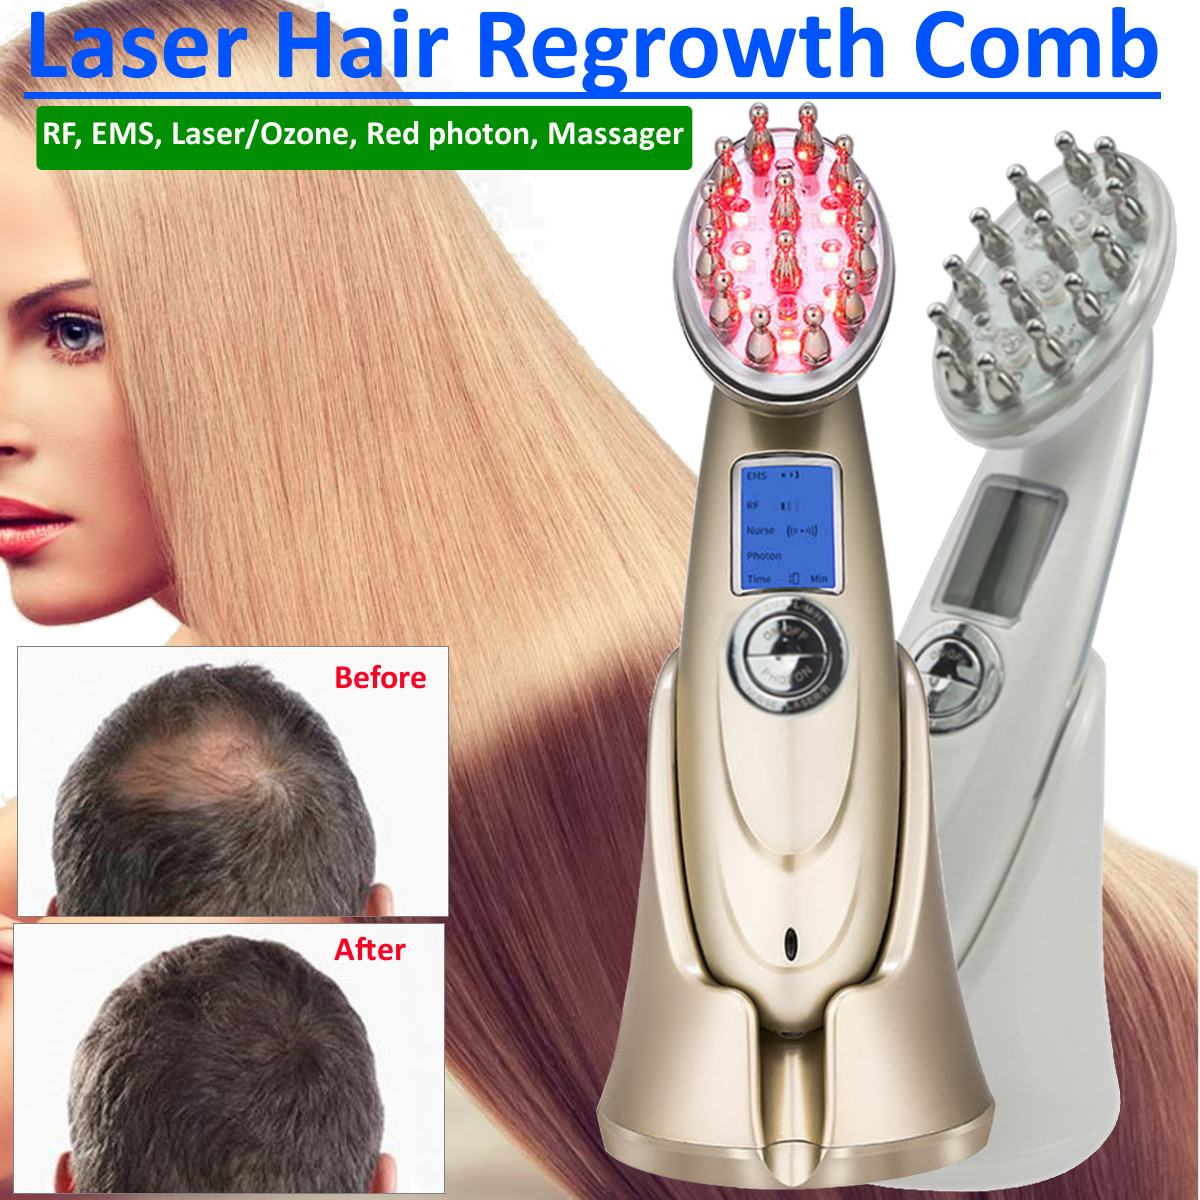 EMS Microcurrent Photon Light RF Hair Loss Renewable Therapy Vibration Massage Scalp Laser Hair Growth Rechargeable Care DeviceEMS Microcurrent Photon Light RF Hair Loss Renewable Therapy Vibration Massage Scalp Laser Hair Growth Rechargeable Care Device